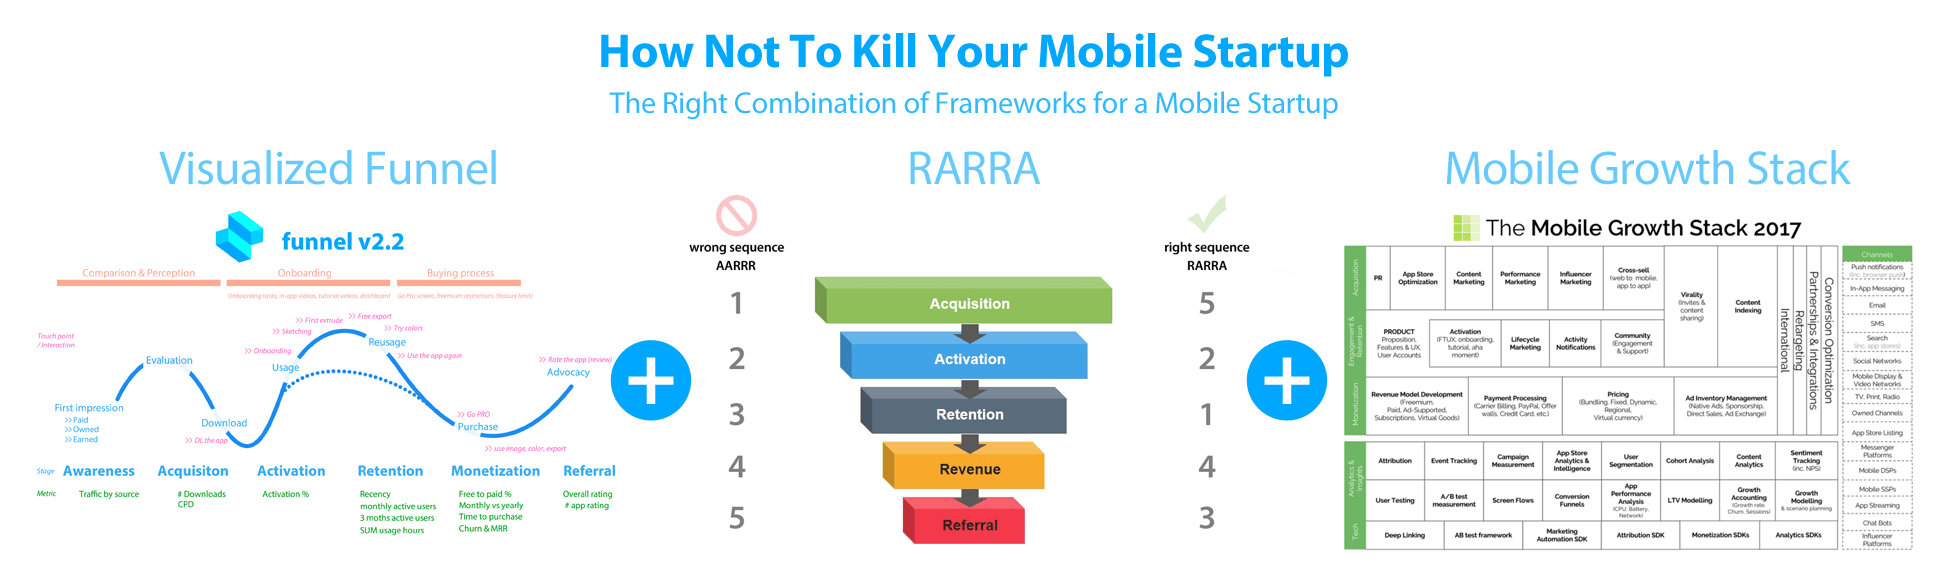 How Not To Kill Your Mobile Startup- Funnel meets RARRA meets Mobile Growth Stack